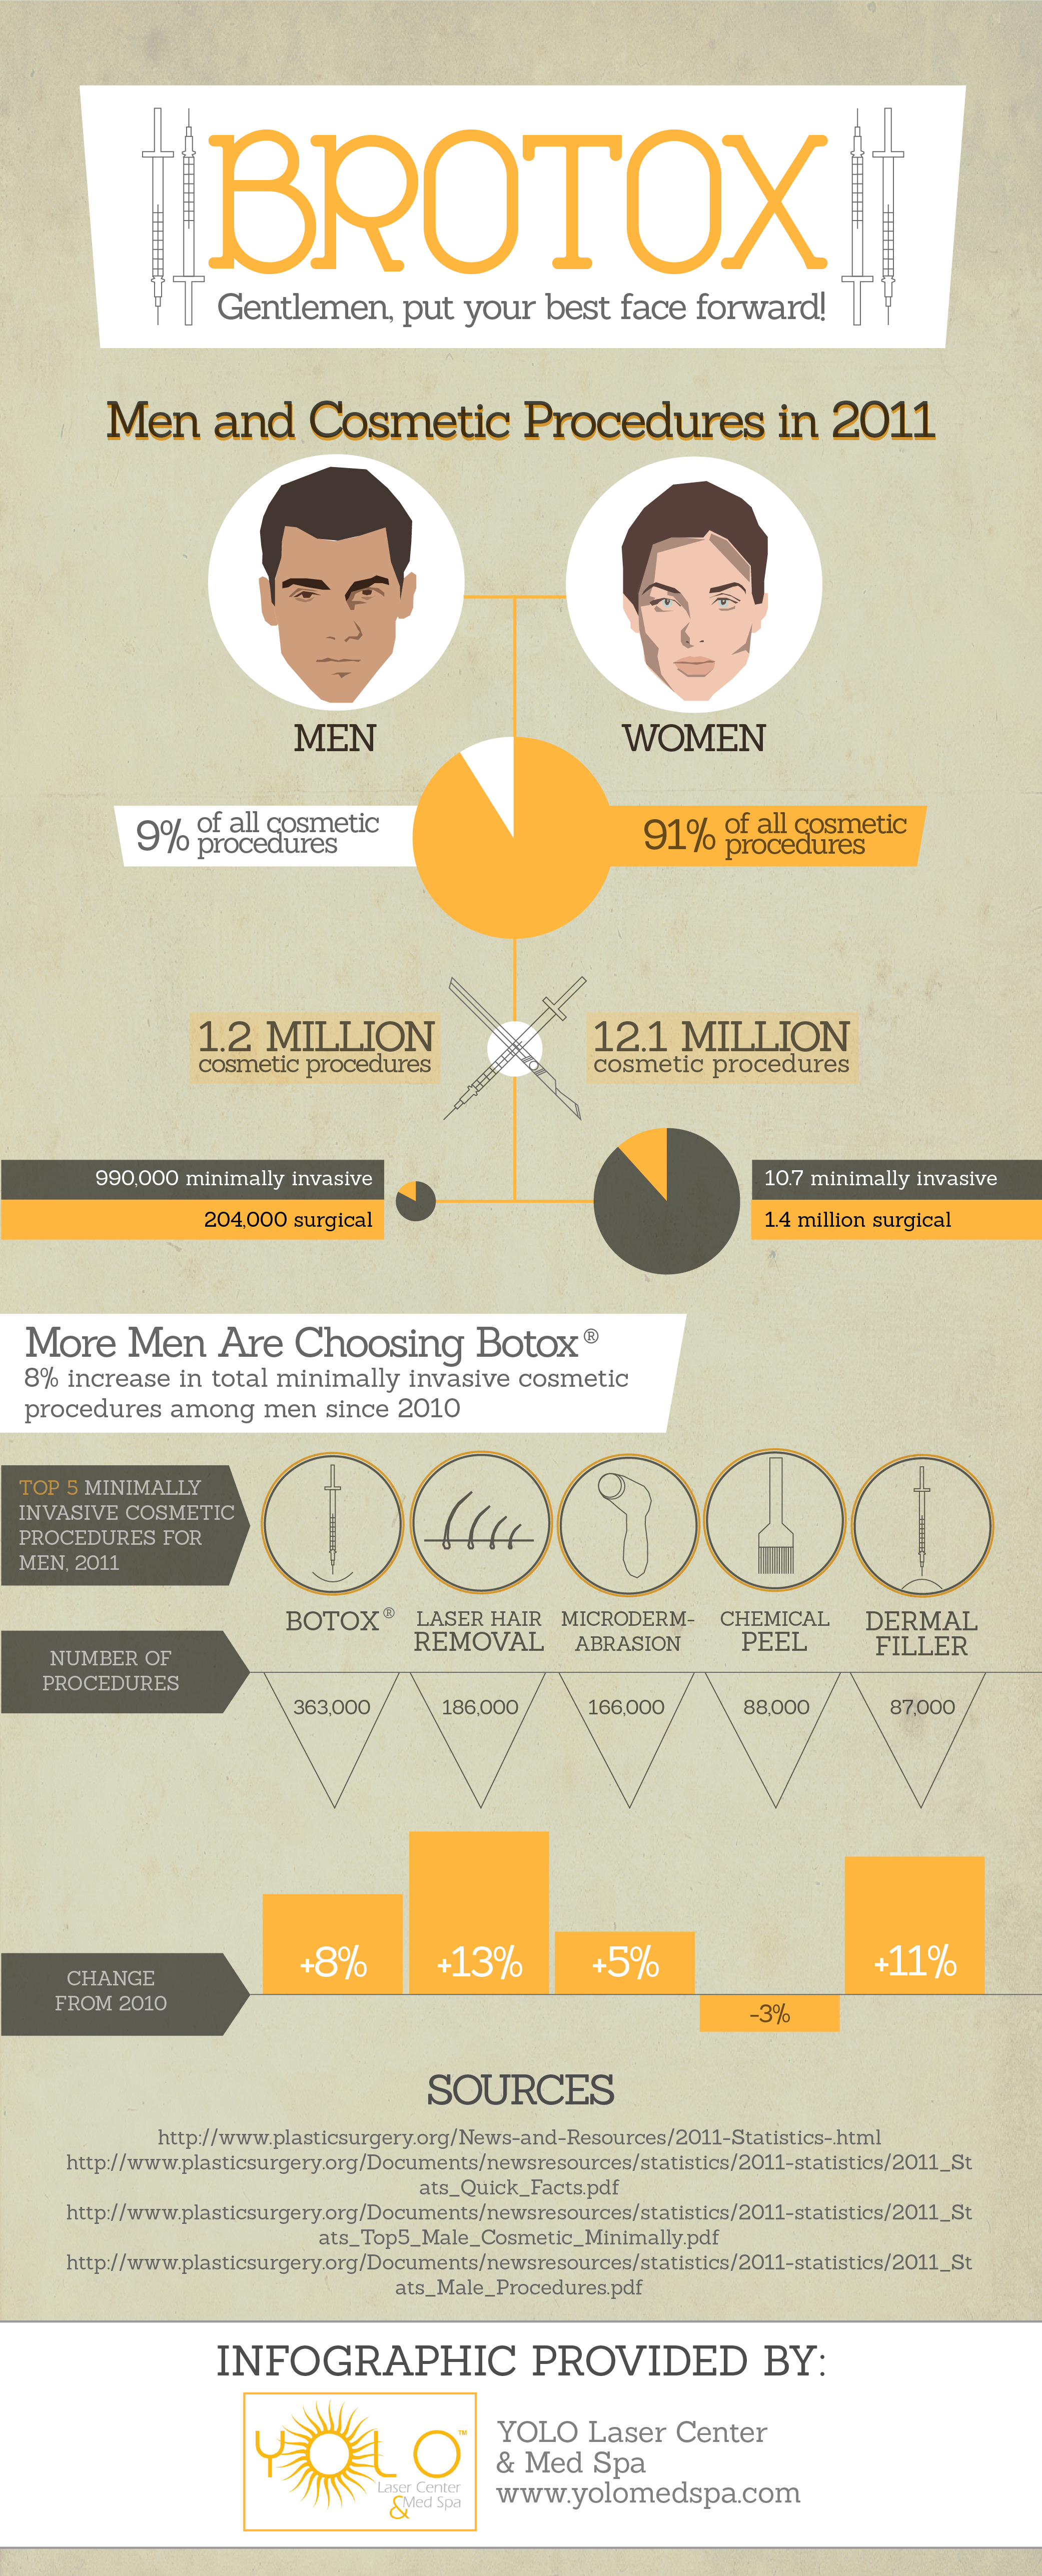 Brotox Infographic Yolo Laser Center Med Spa Brotox Botox Best Face Products